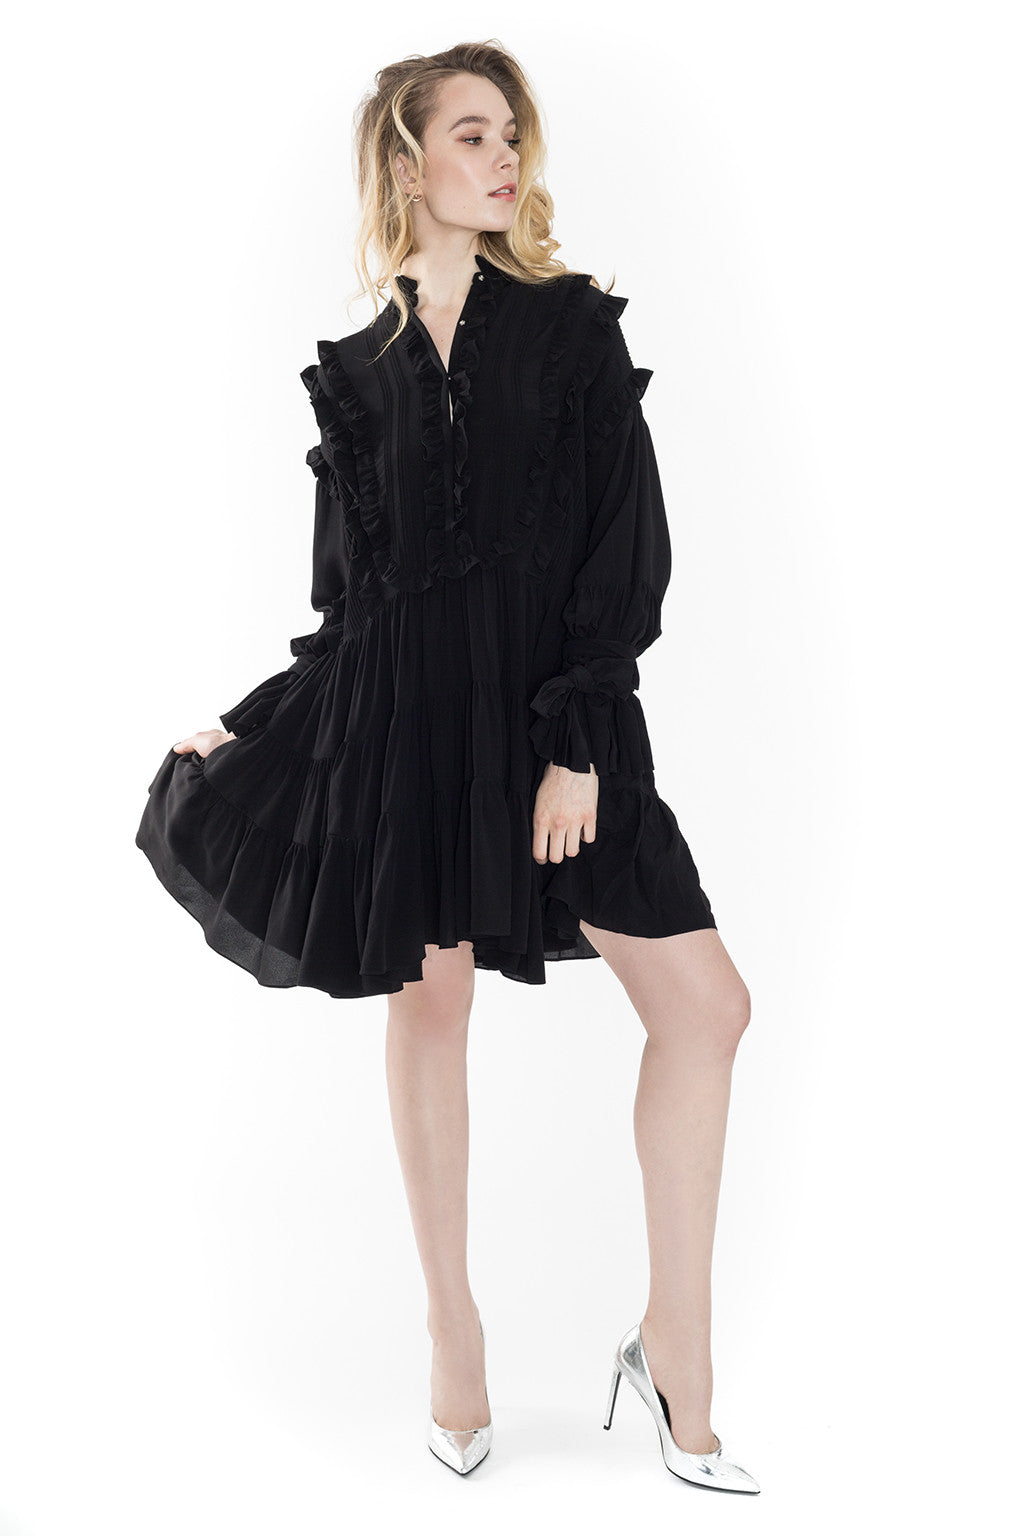 Rustle Silk Dress - Faith Connexion - Dress - TOPGEARNY